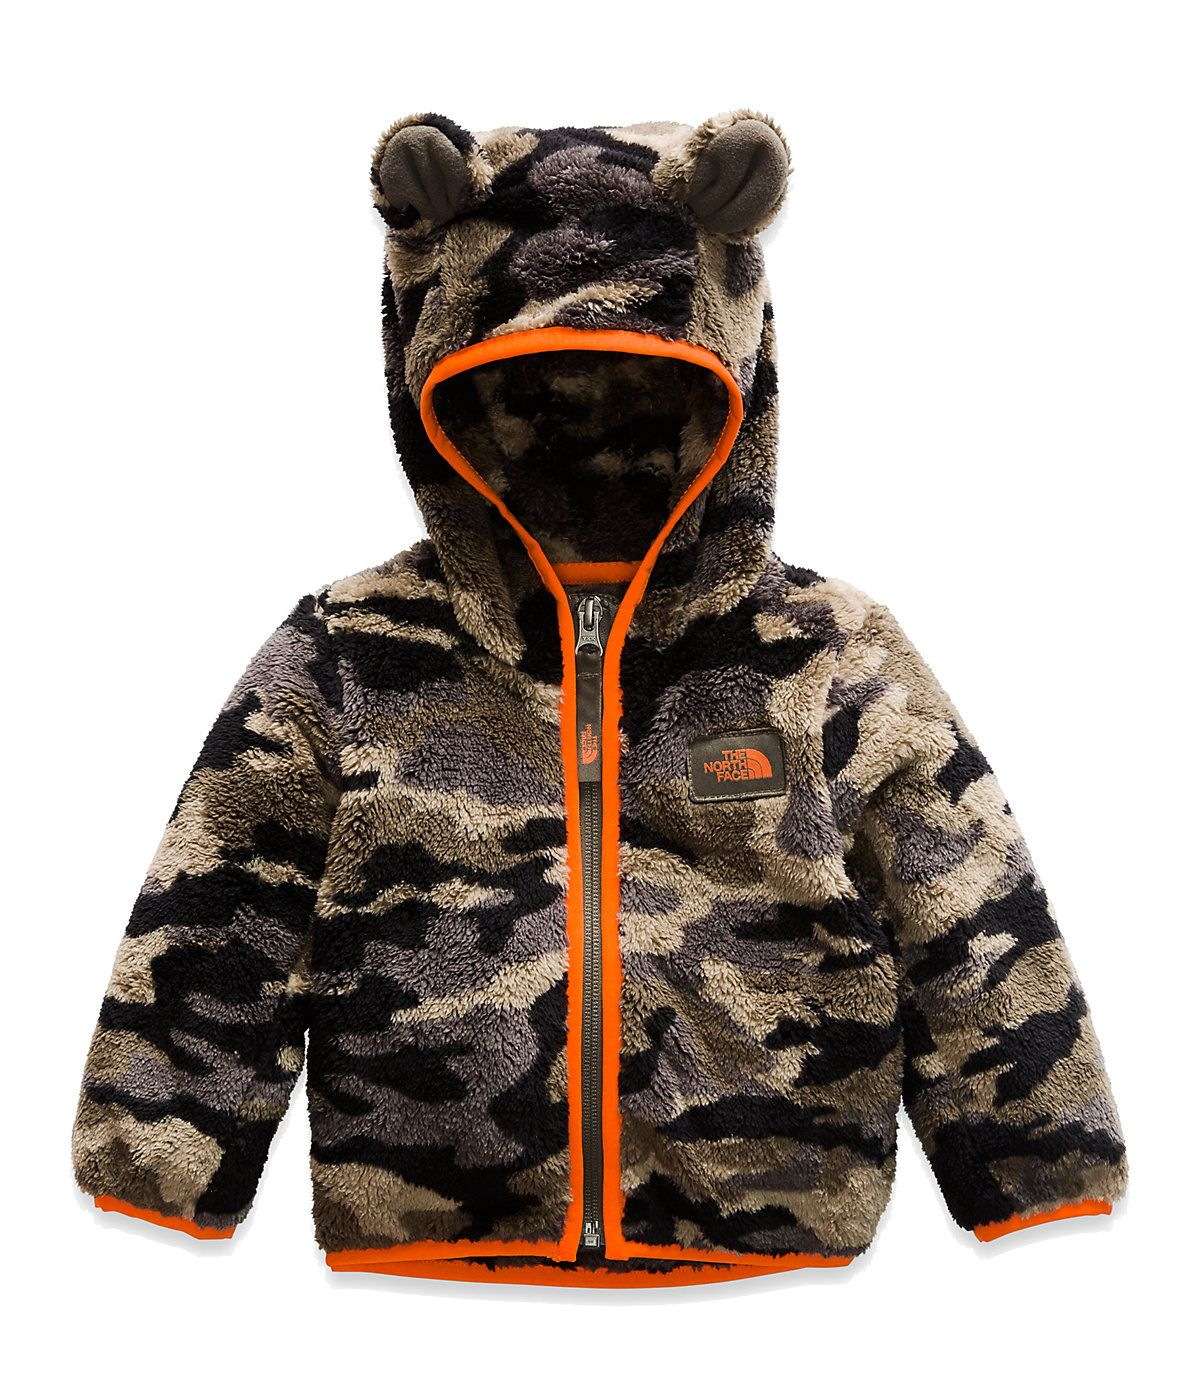 Infant Campshire Bear Hoodie The North Face Boy Outerwear Boy Outfits Baby Boy Outfits [ 1396 x 1200 Pixel ]